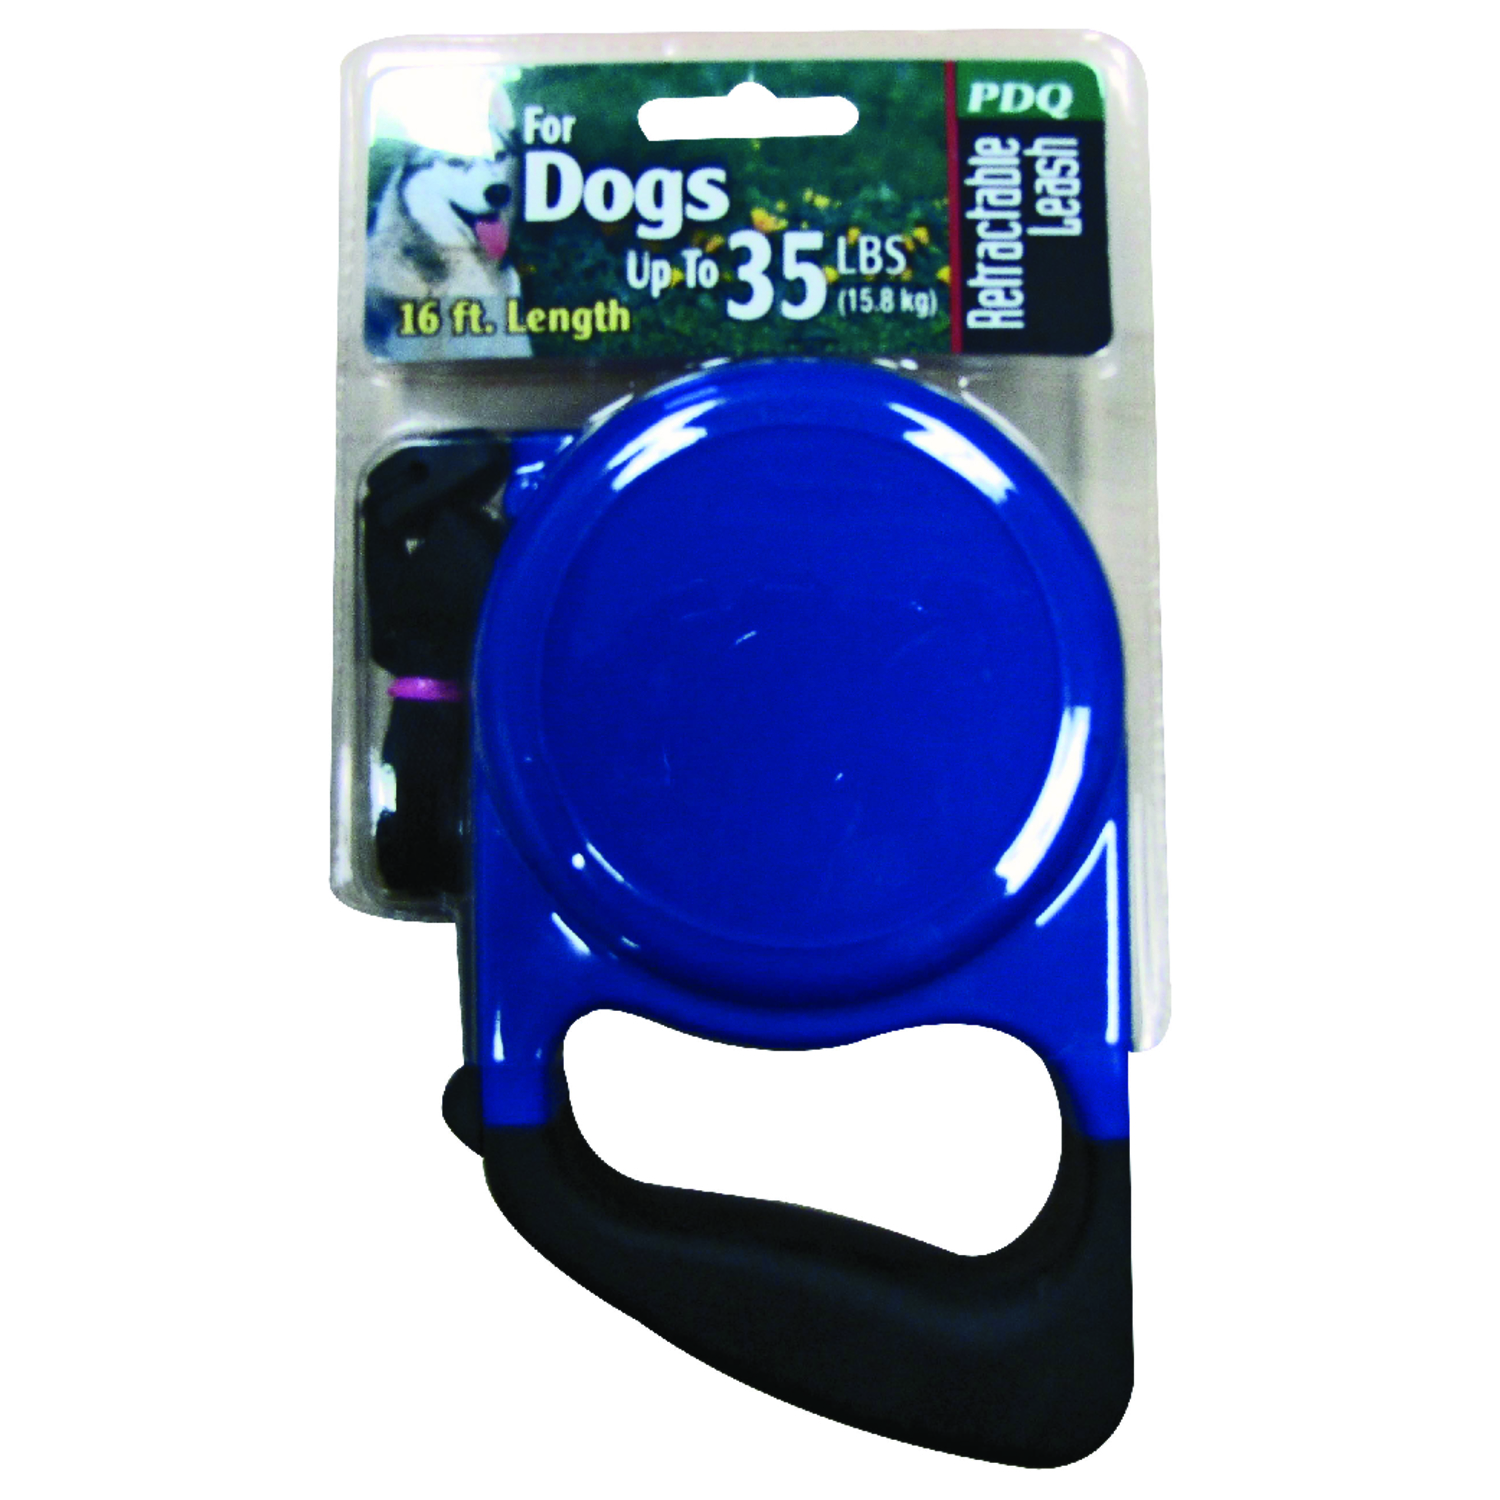 PDQ  Blue / Black  Retractable Lead  Cotton/Nylon  Dog  Retractable Leash  Medium